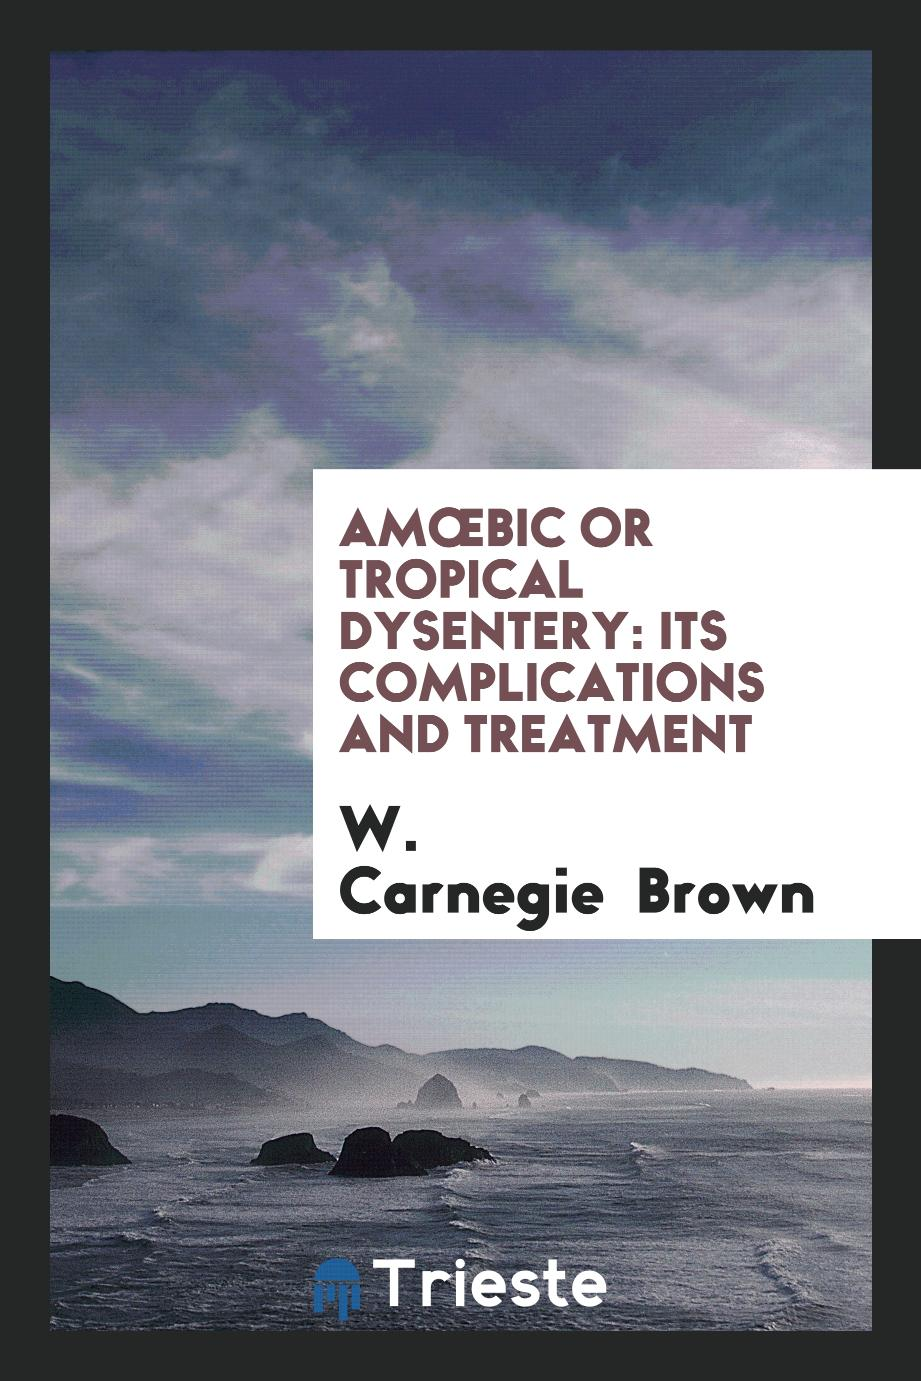 Amœbic Or Tropical Dysentery: Its Complications and Treatment